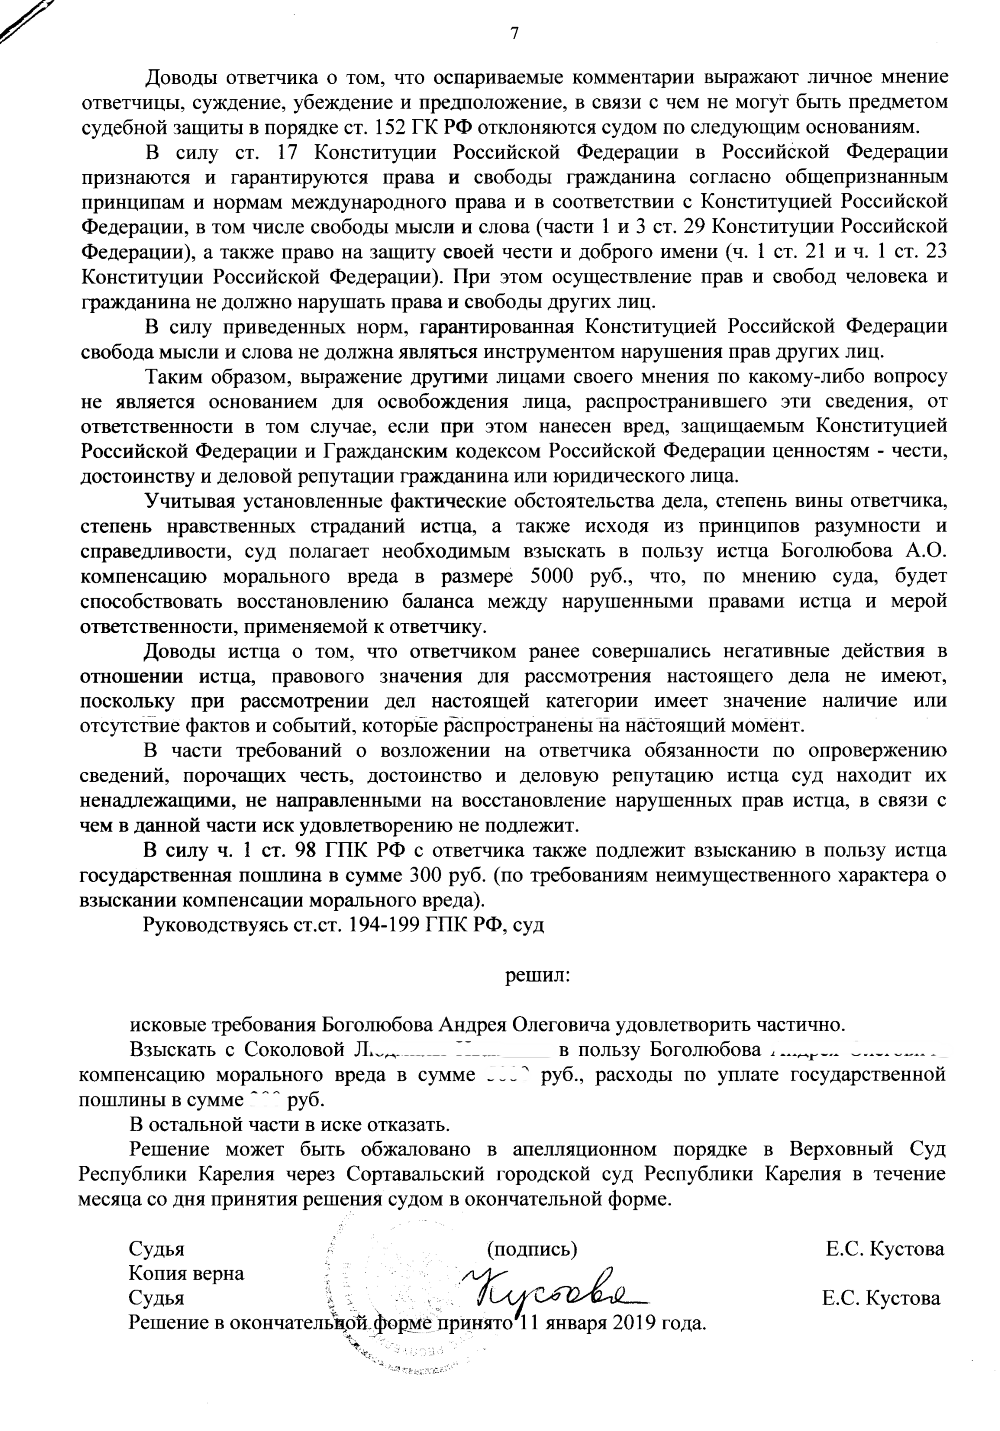 https://sontgranit.ru/forum/img/20190109-9.png